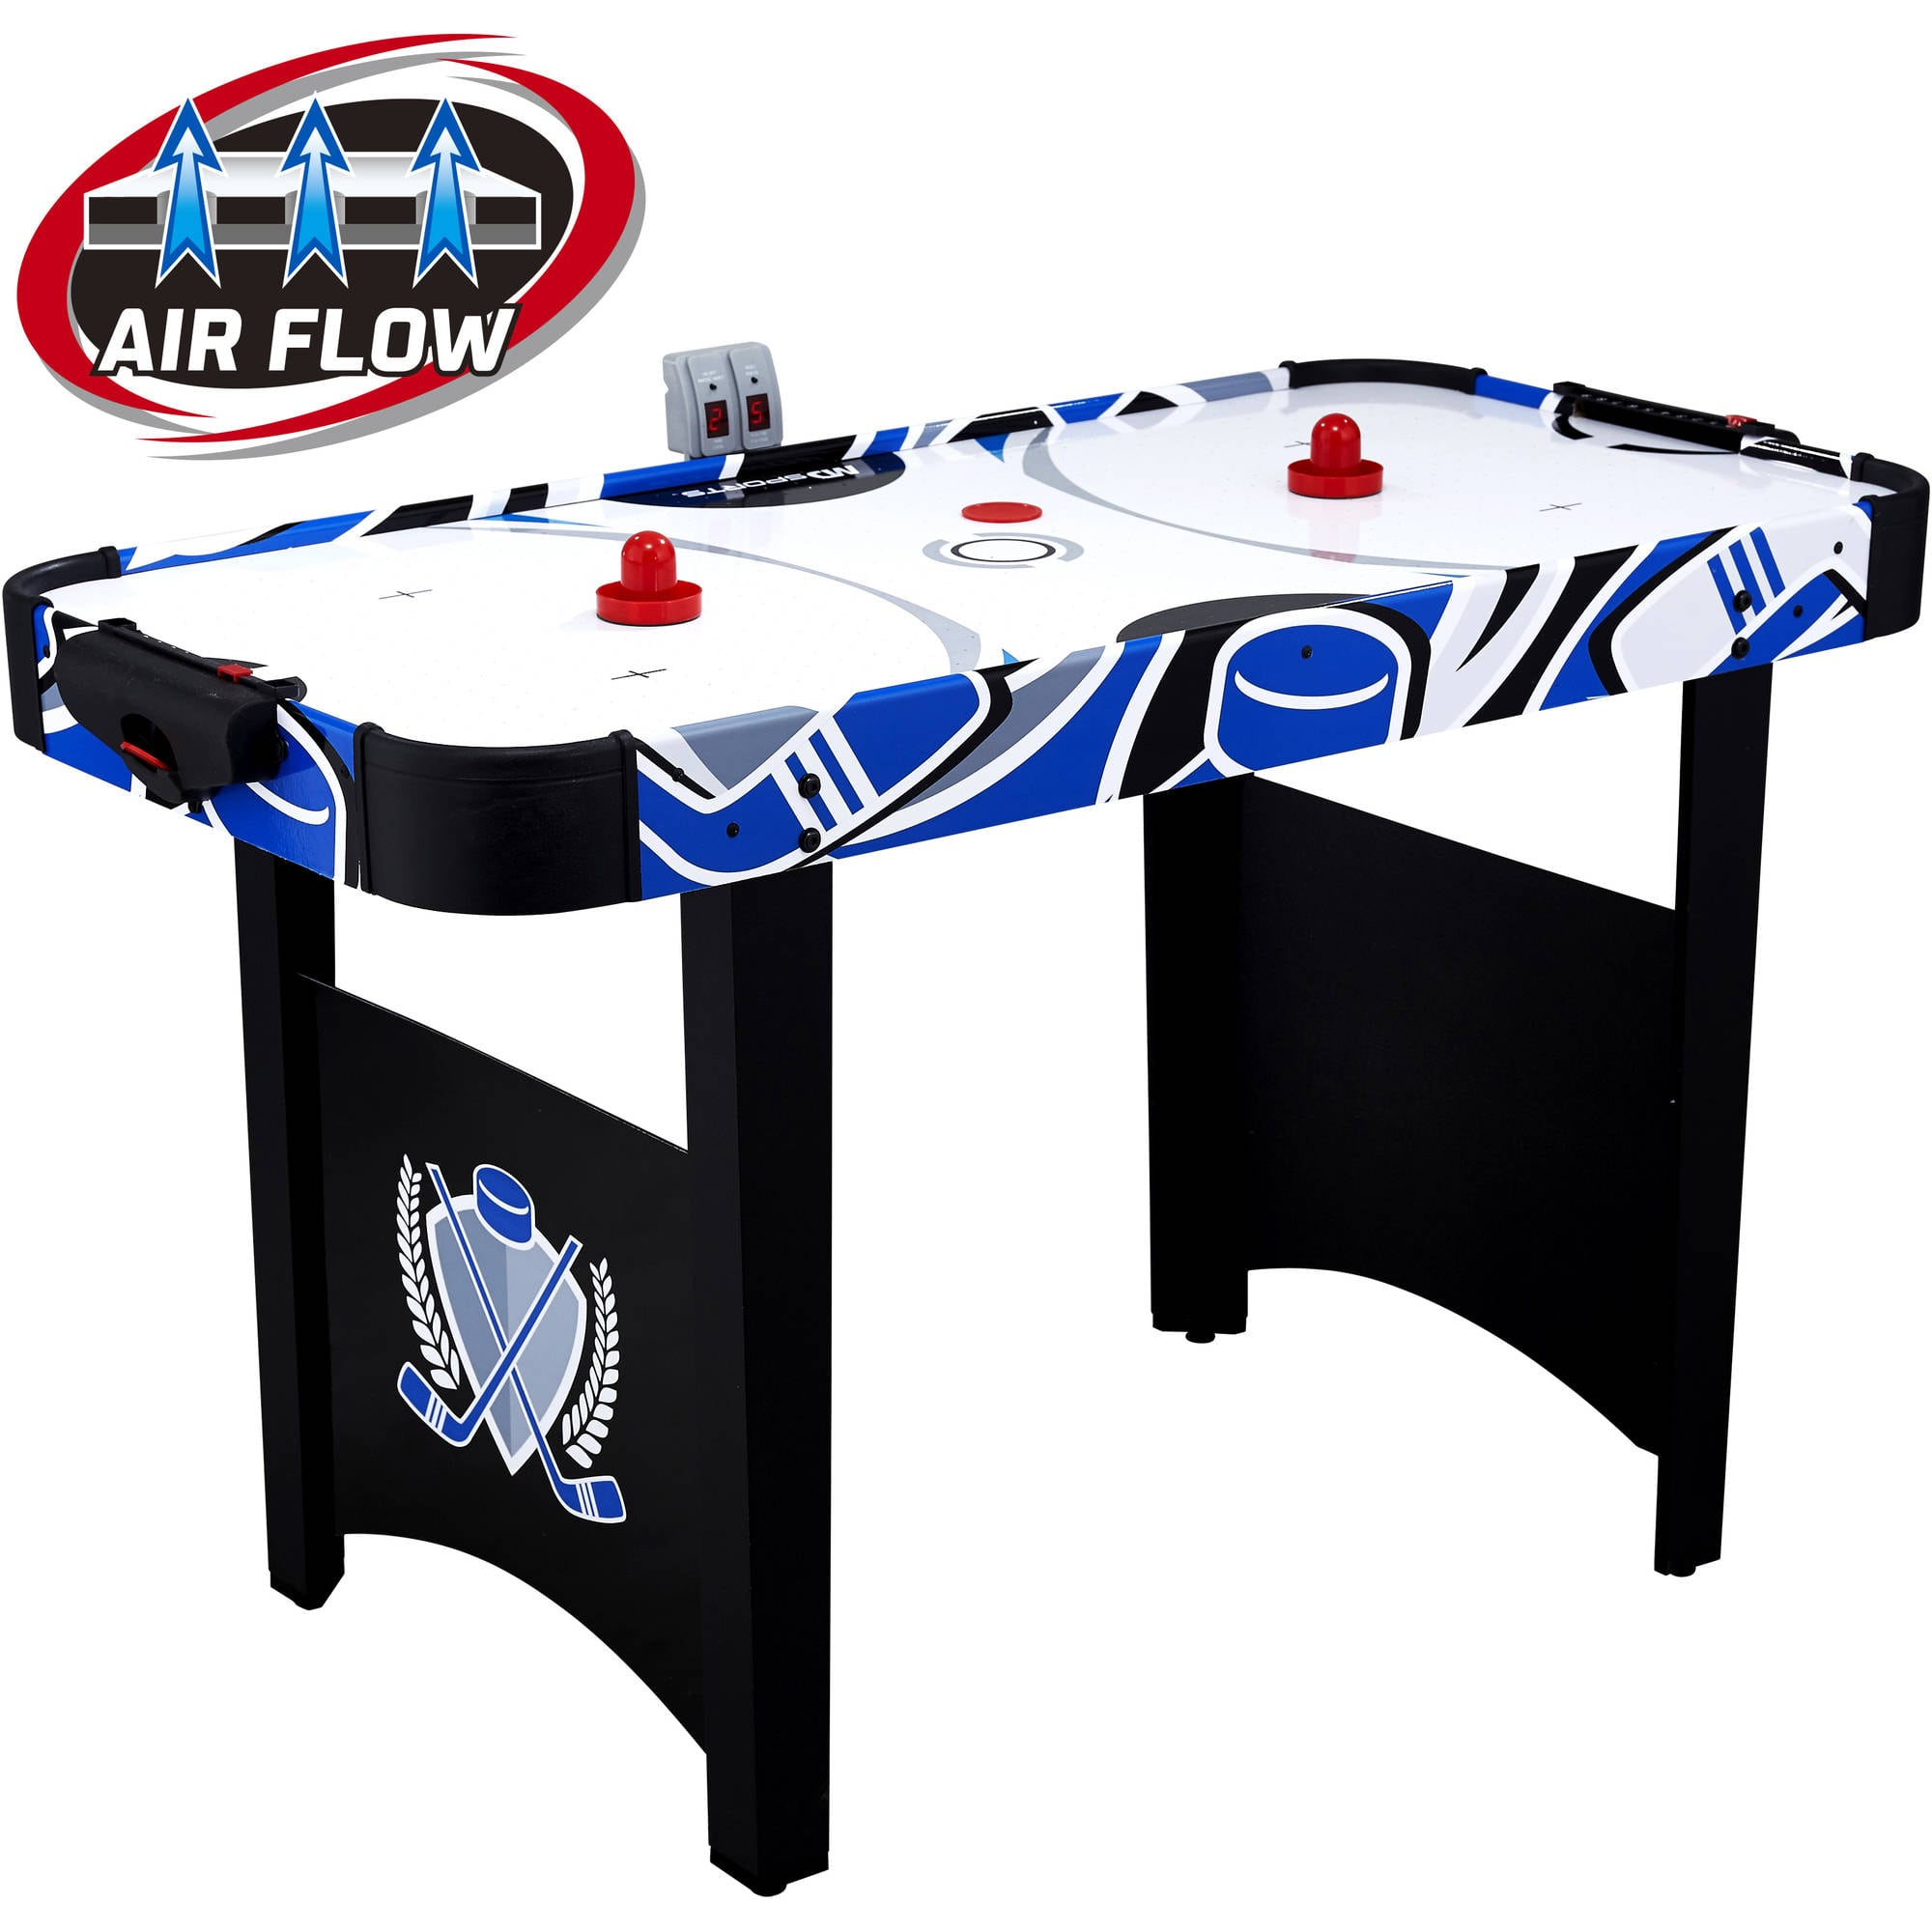 MD Sports 48 Inch Air Powered Hockey Table $28 + Free Store Pickup